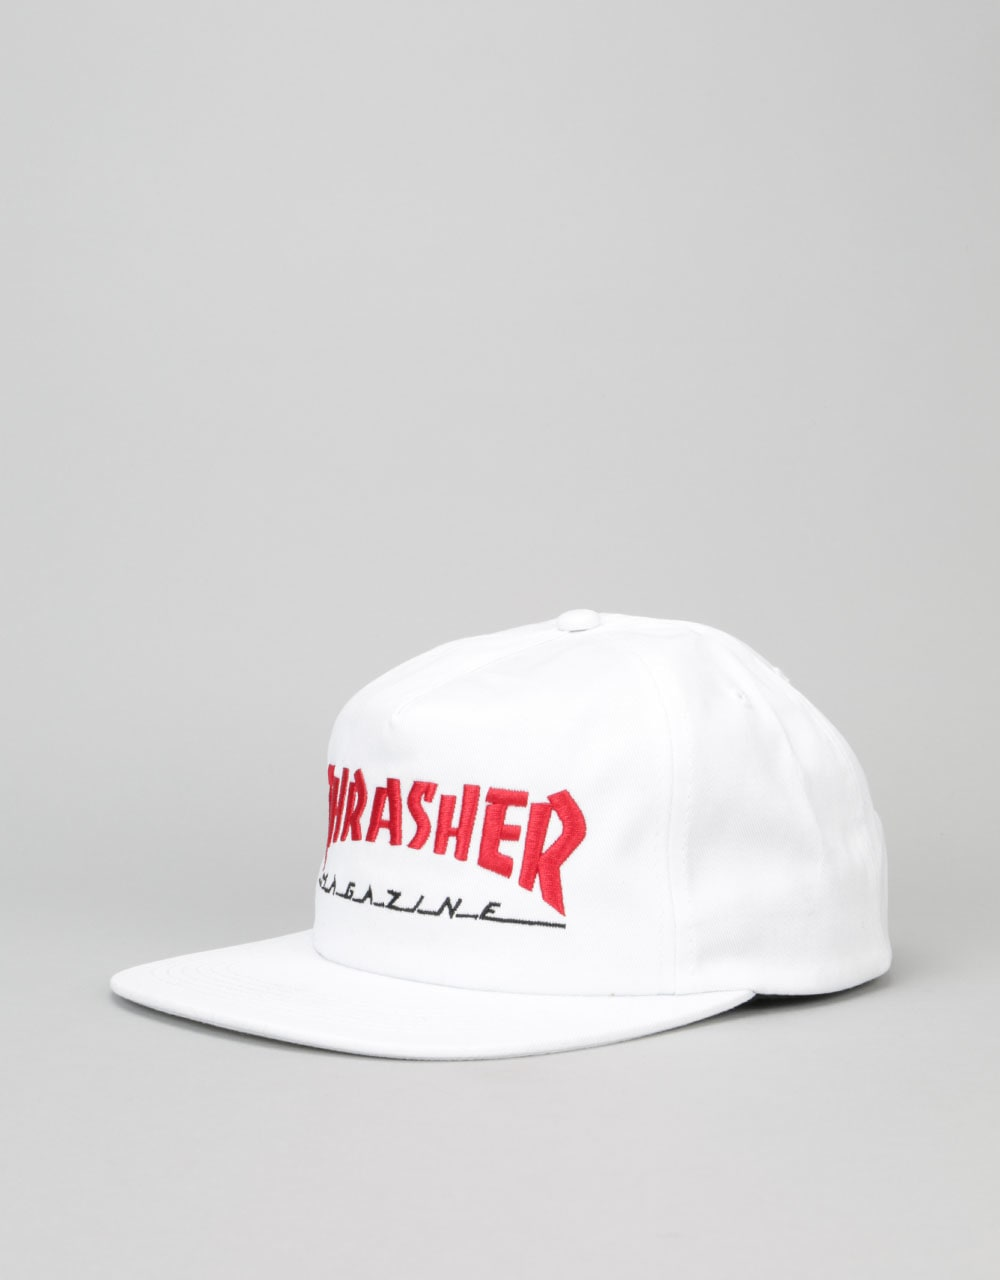 d7e23c4dd9a Thrasher Two-Tone Magazine Snapback Cap - White Red